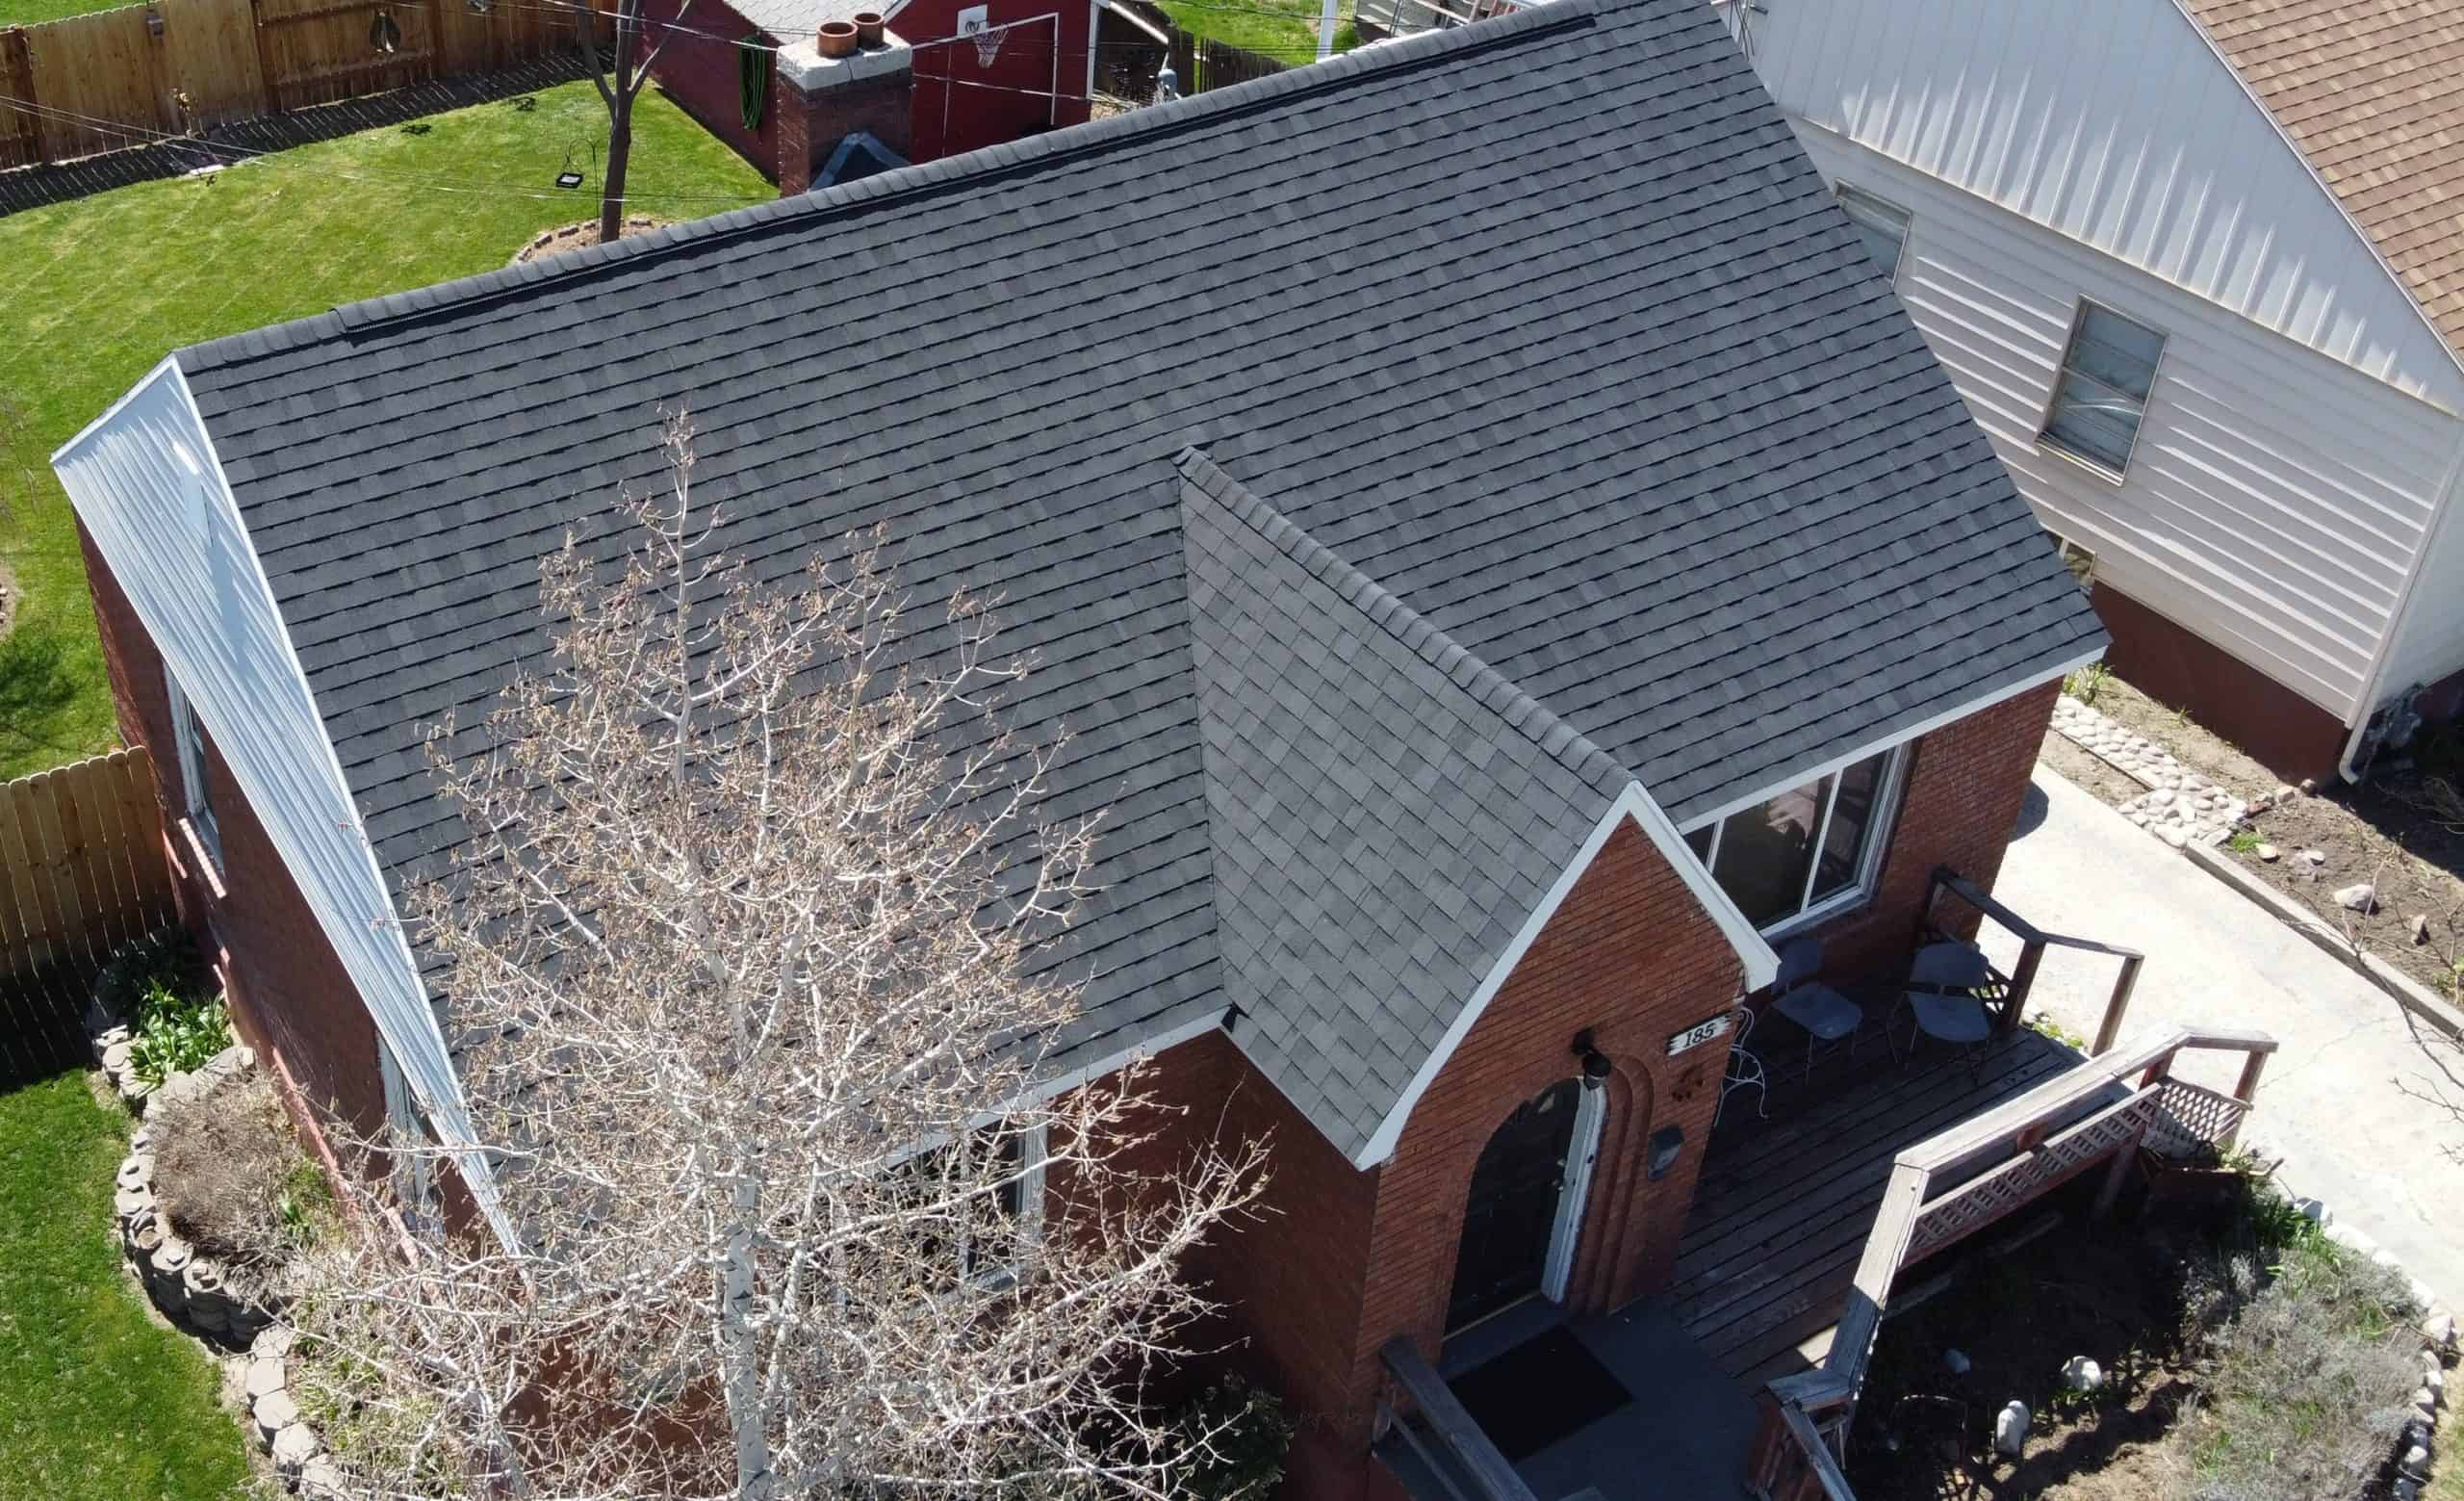 Pleasant Grove Roof Repair